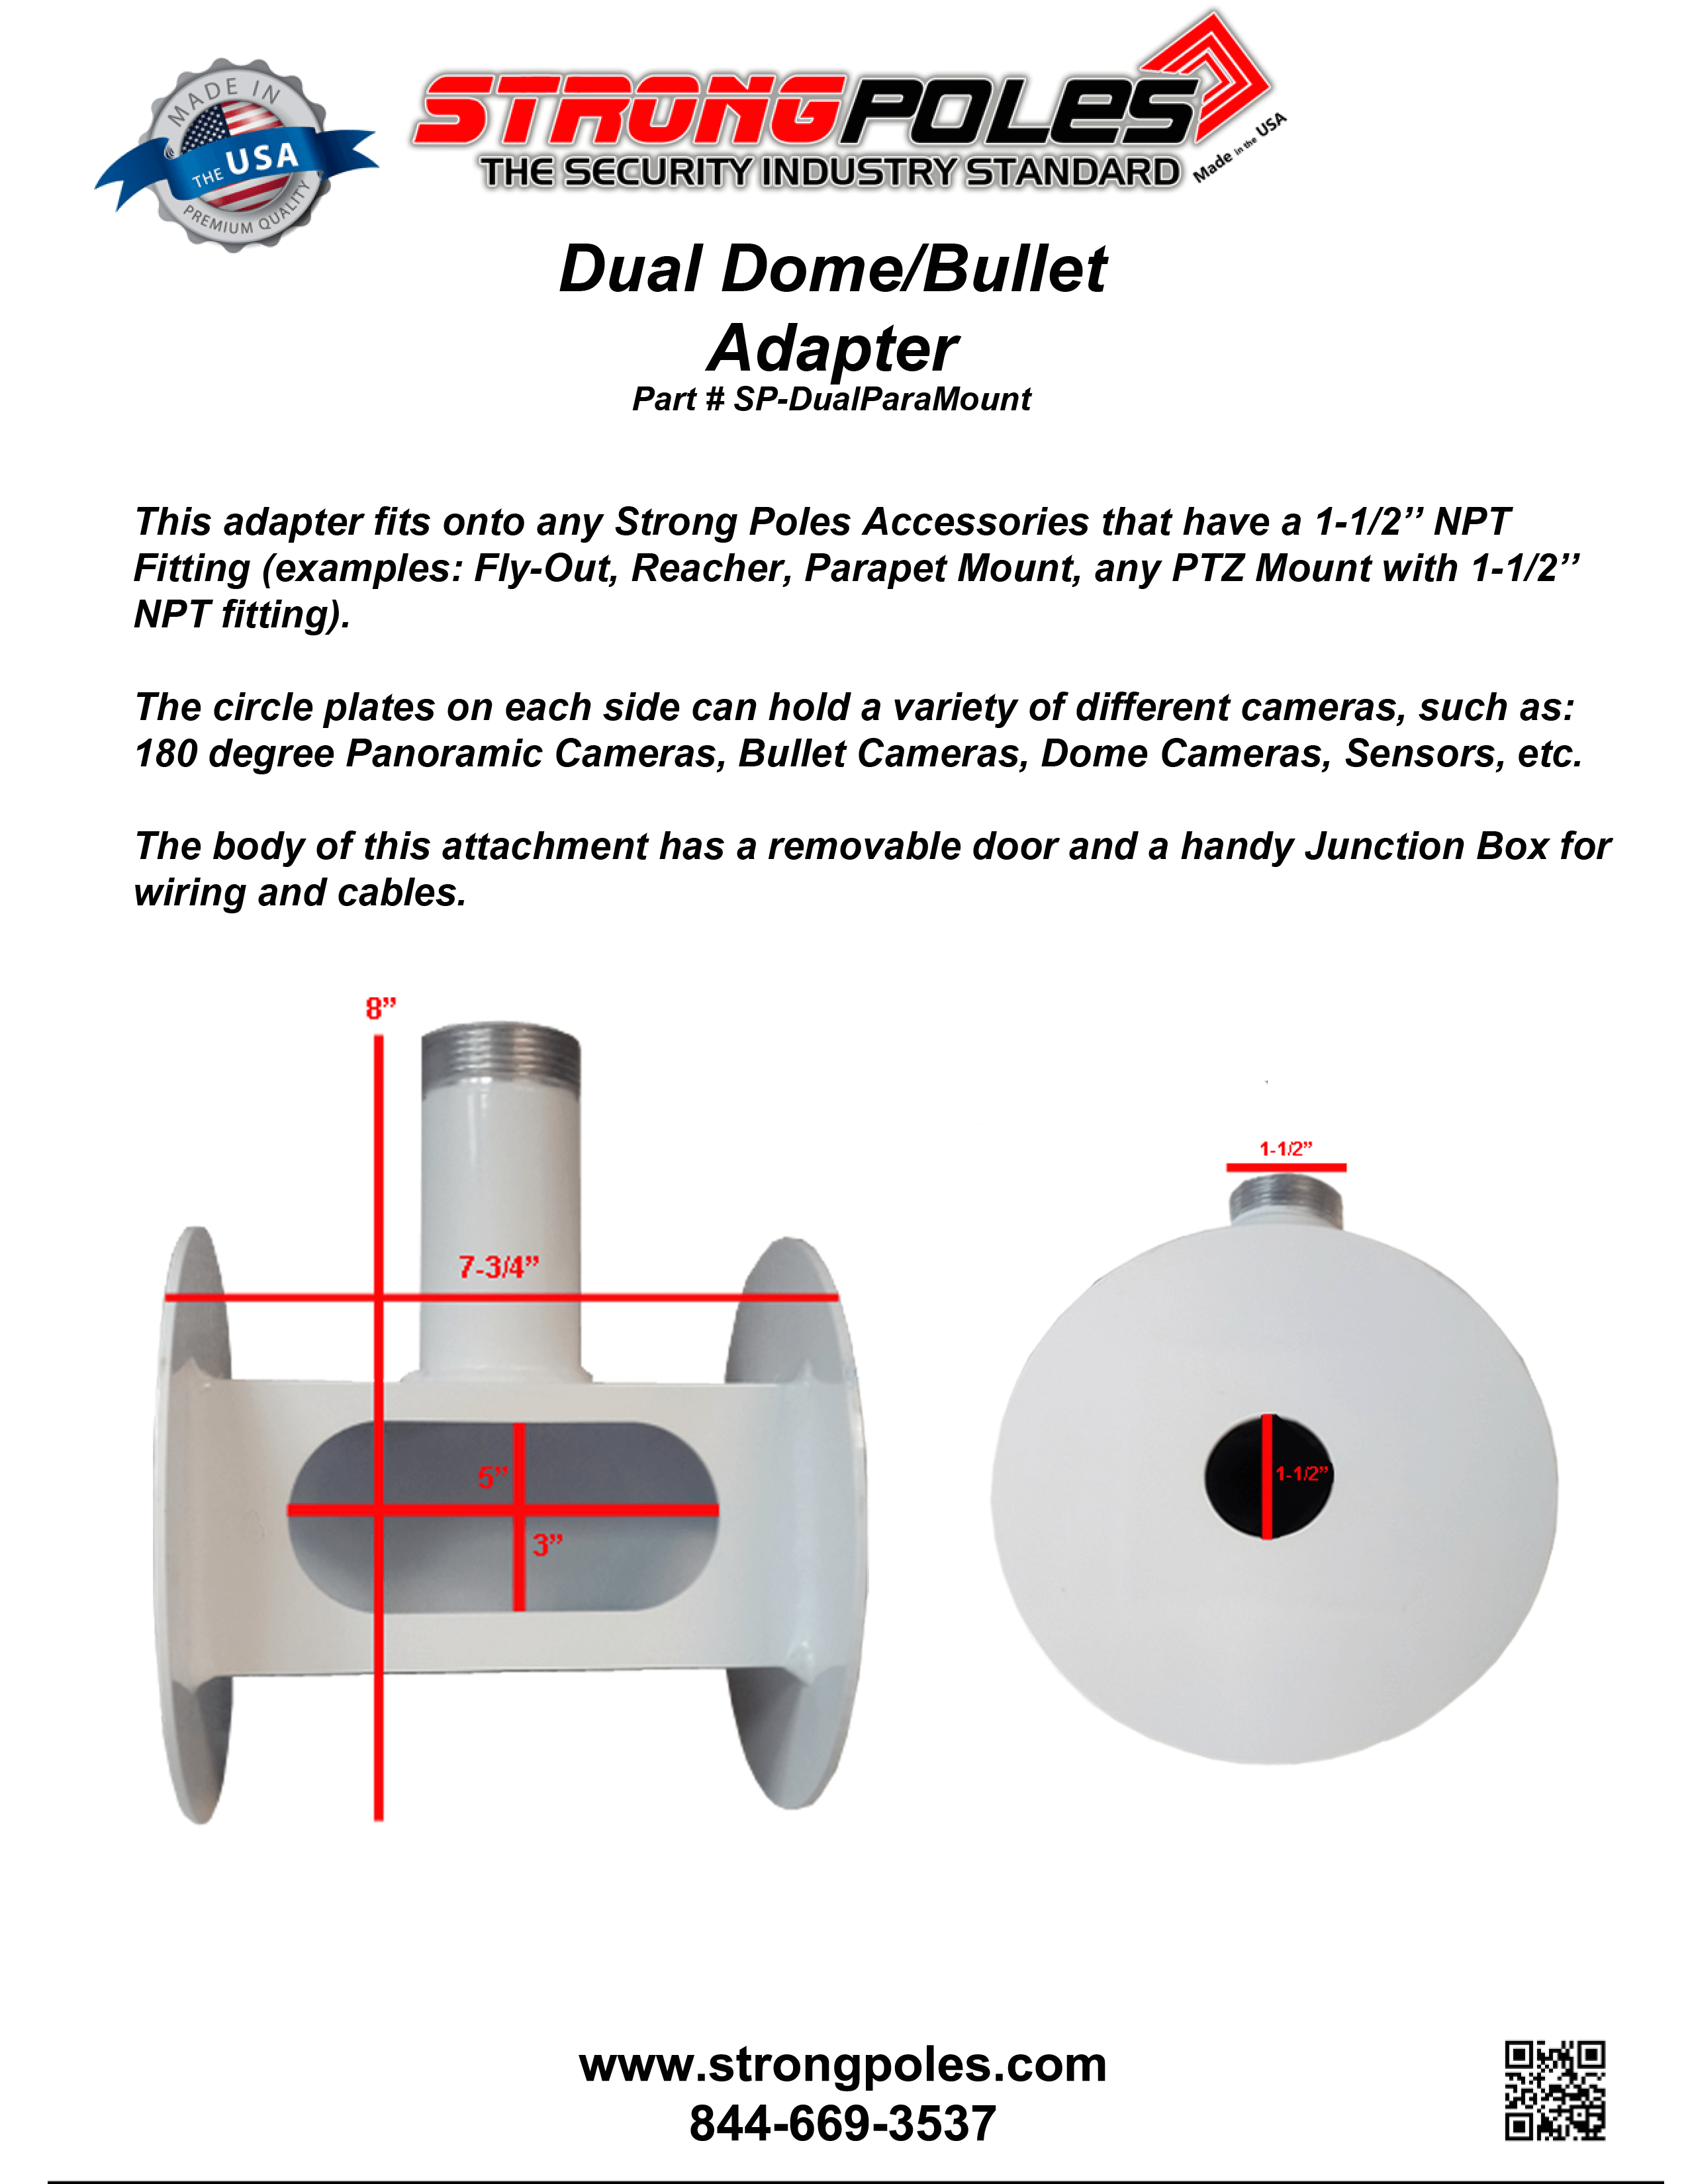 Dual Dome Bullet Adapter Specs - Dual Dome/Bullet Adaptor